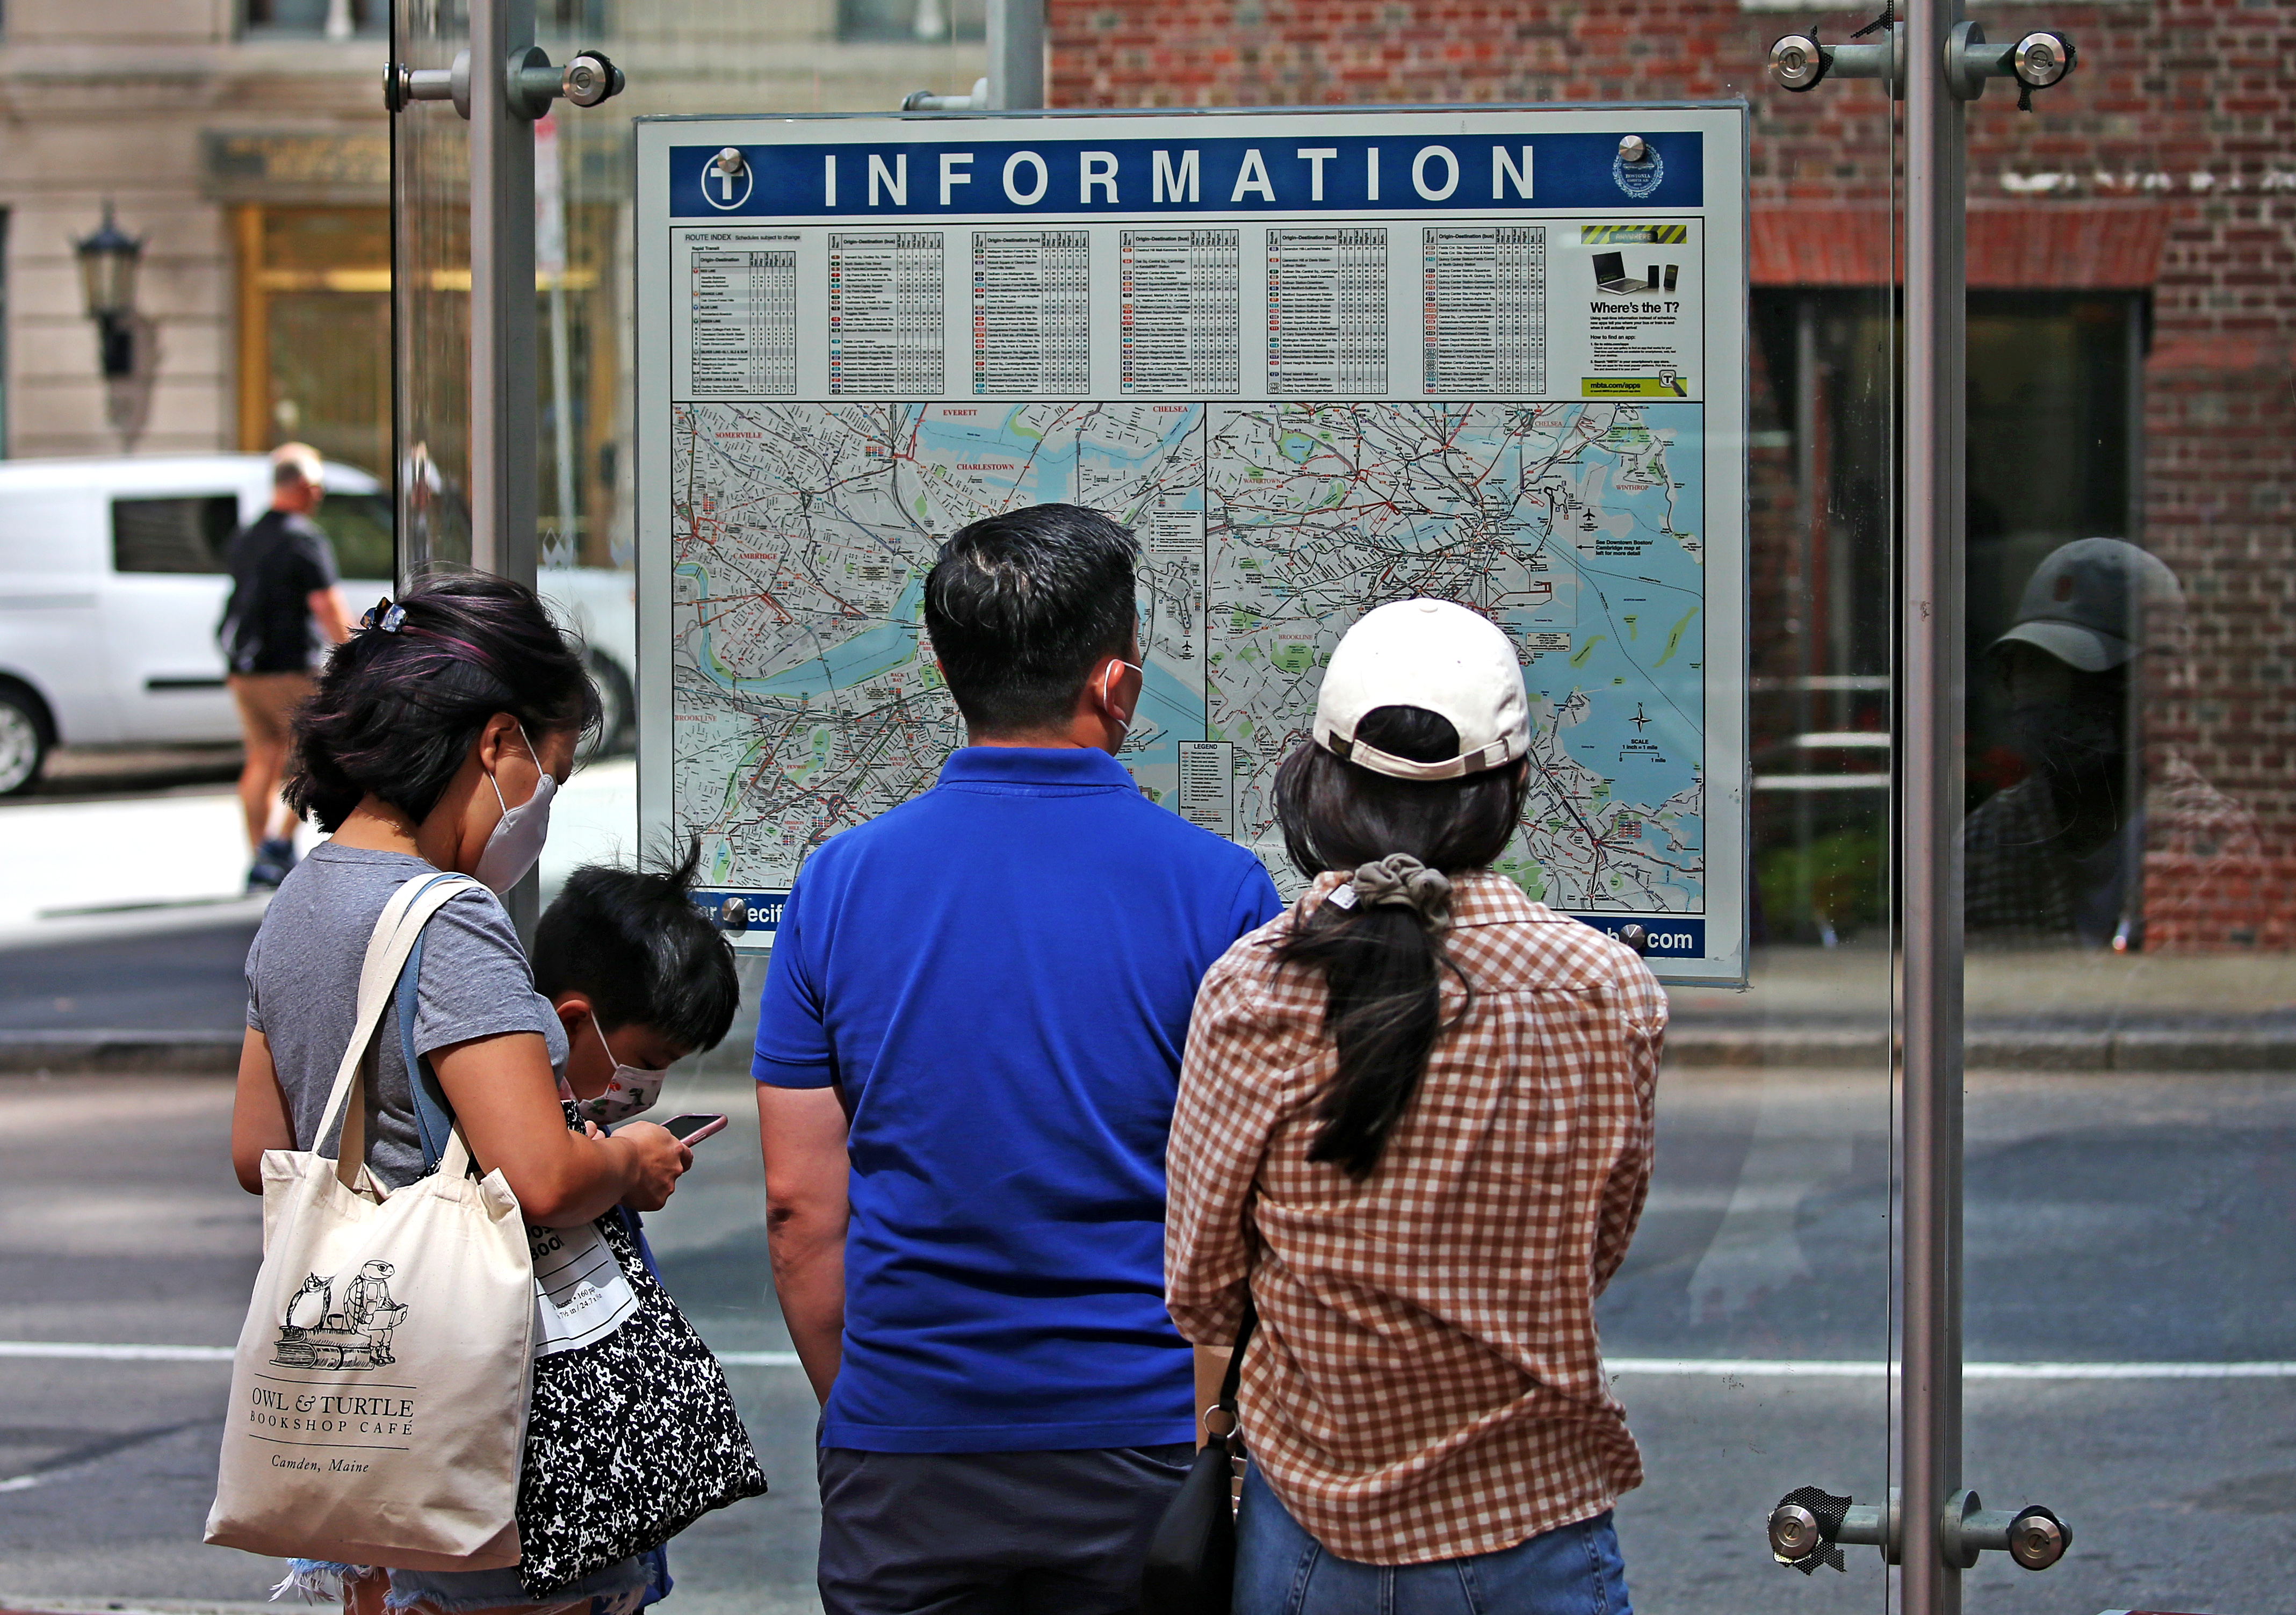 Tourists used a map to navigate around Boston from State street.